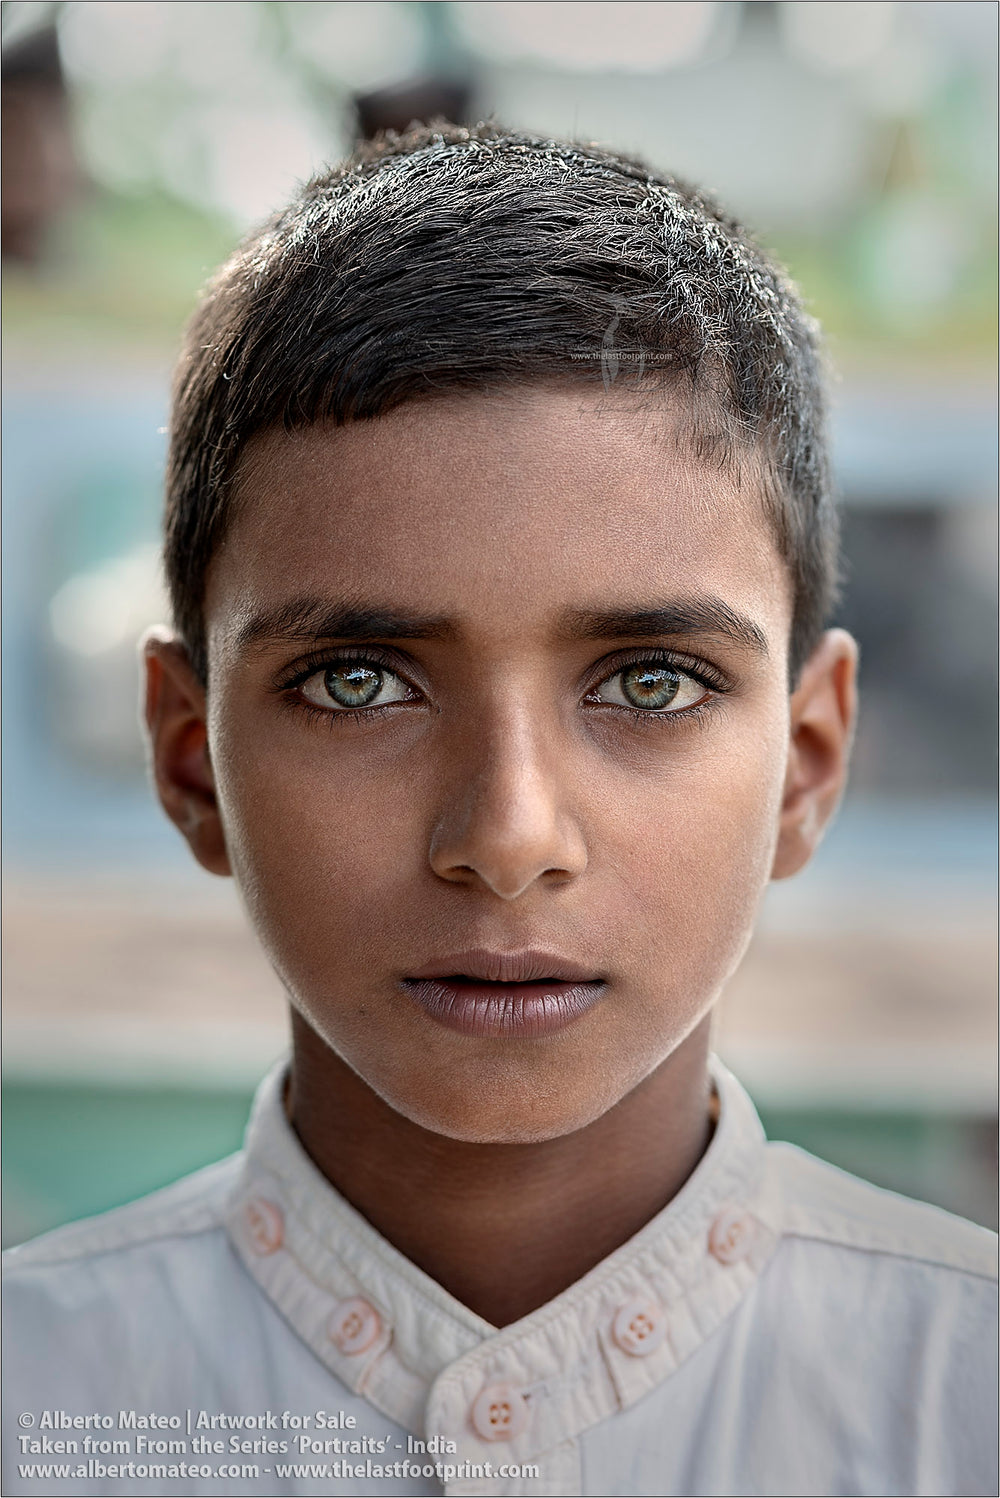 Portrait of green-eyed Muslim Boy, Ballia, Uttar Pradesh, India. [COLOR]